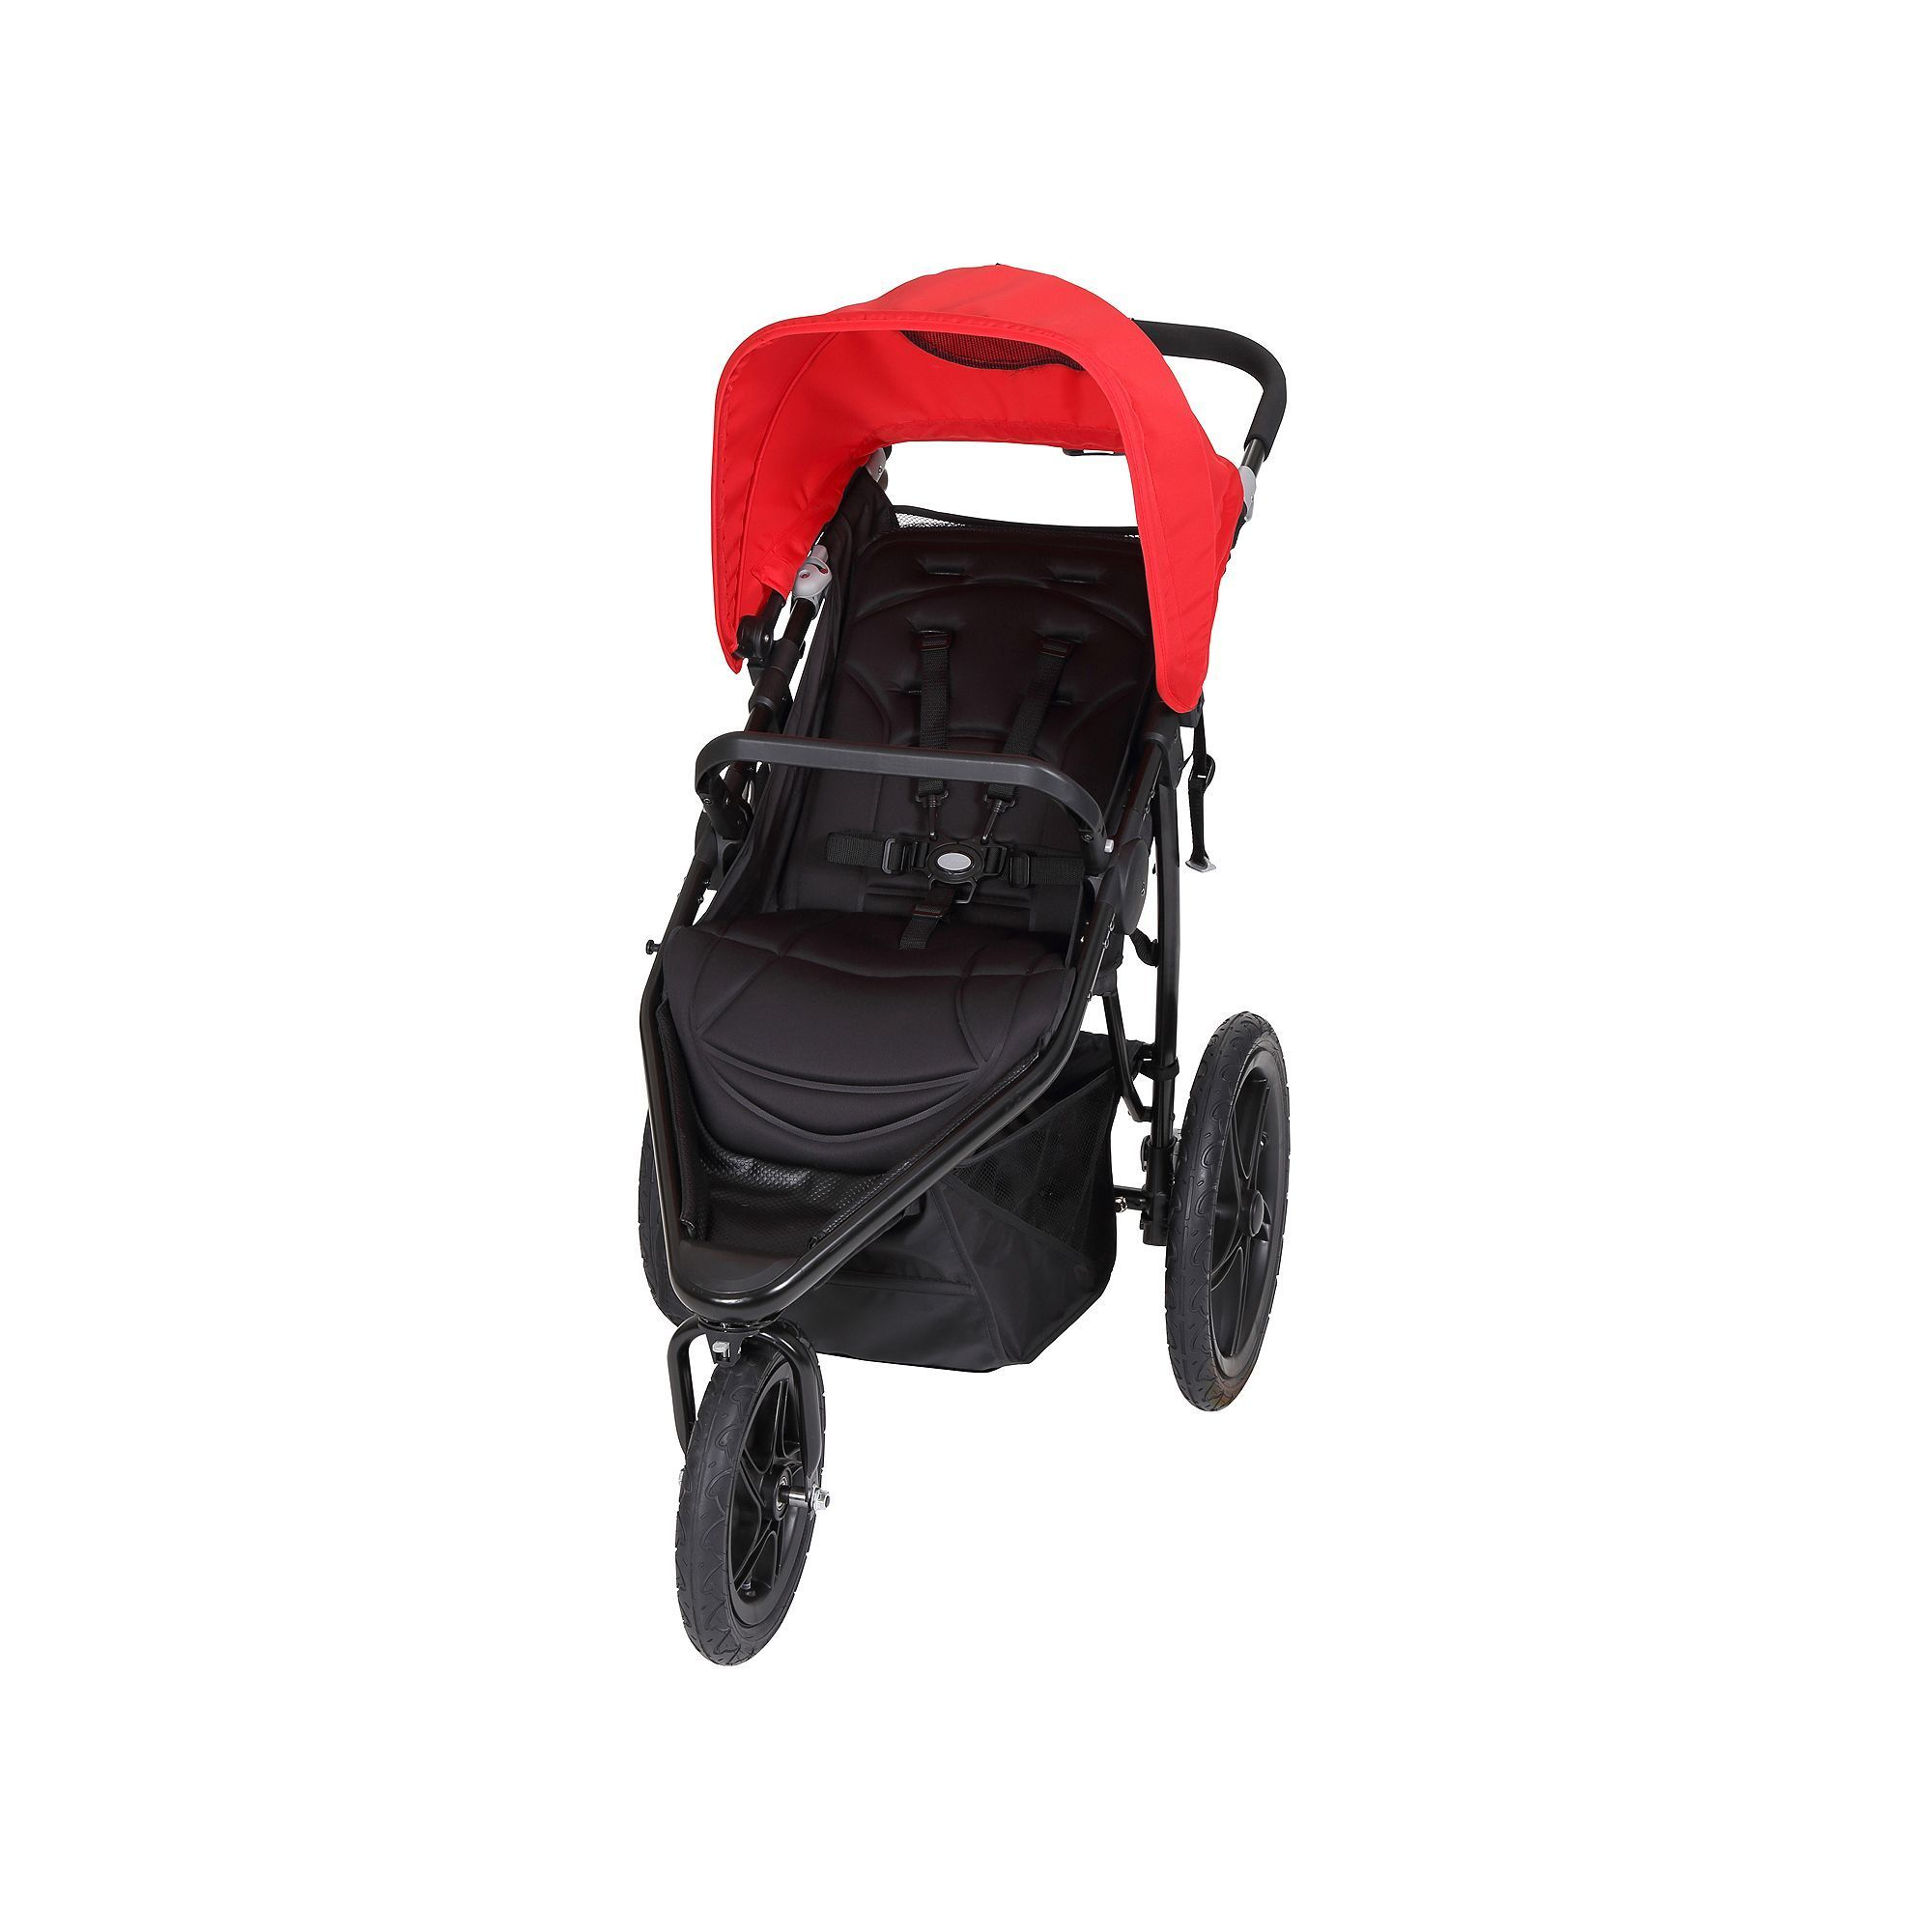 Baby Trend Stealth Jogger Stroller Baby strollers